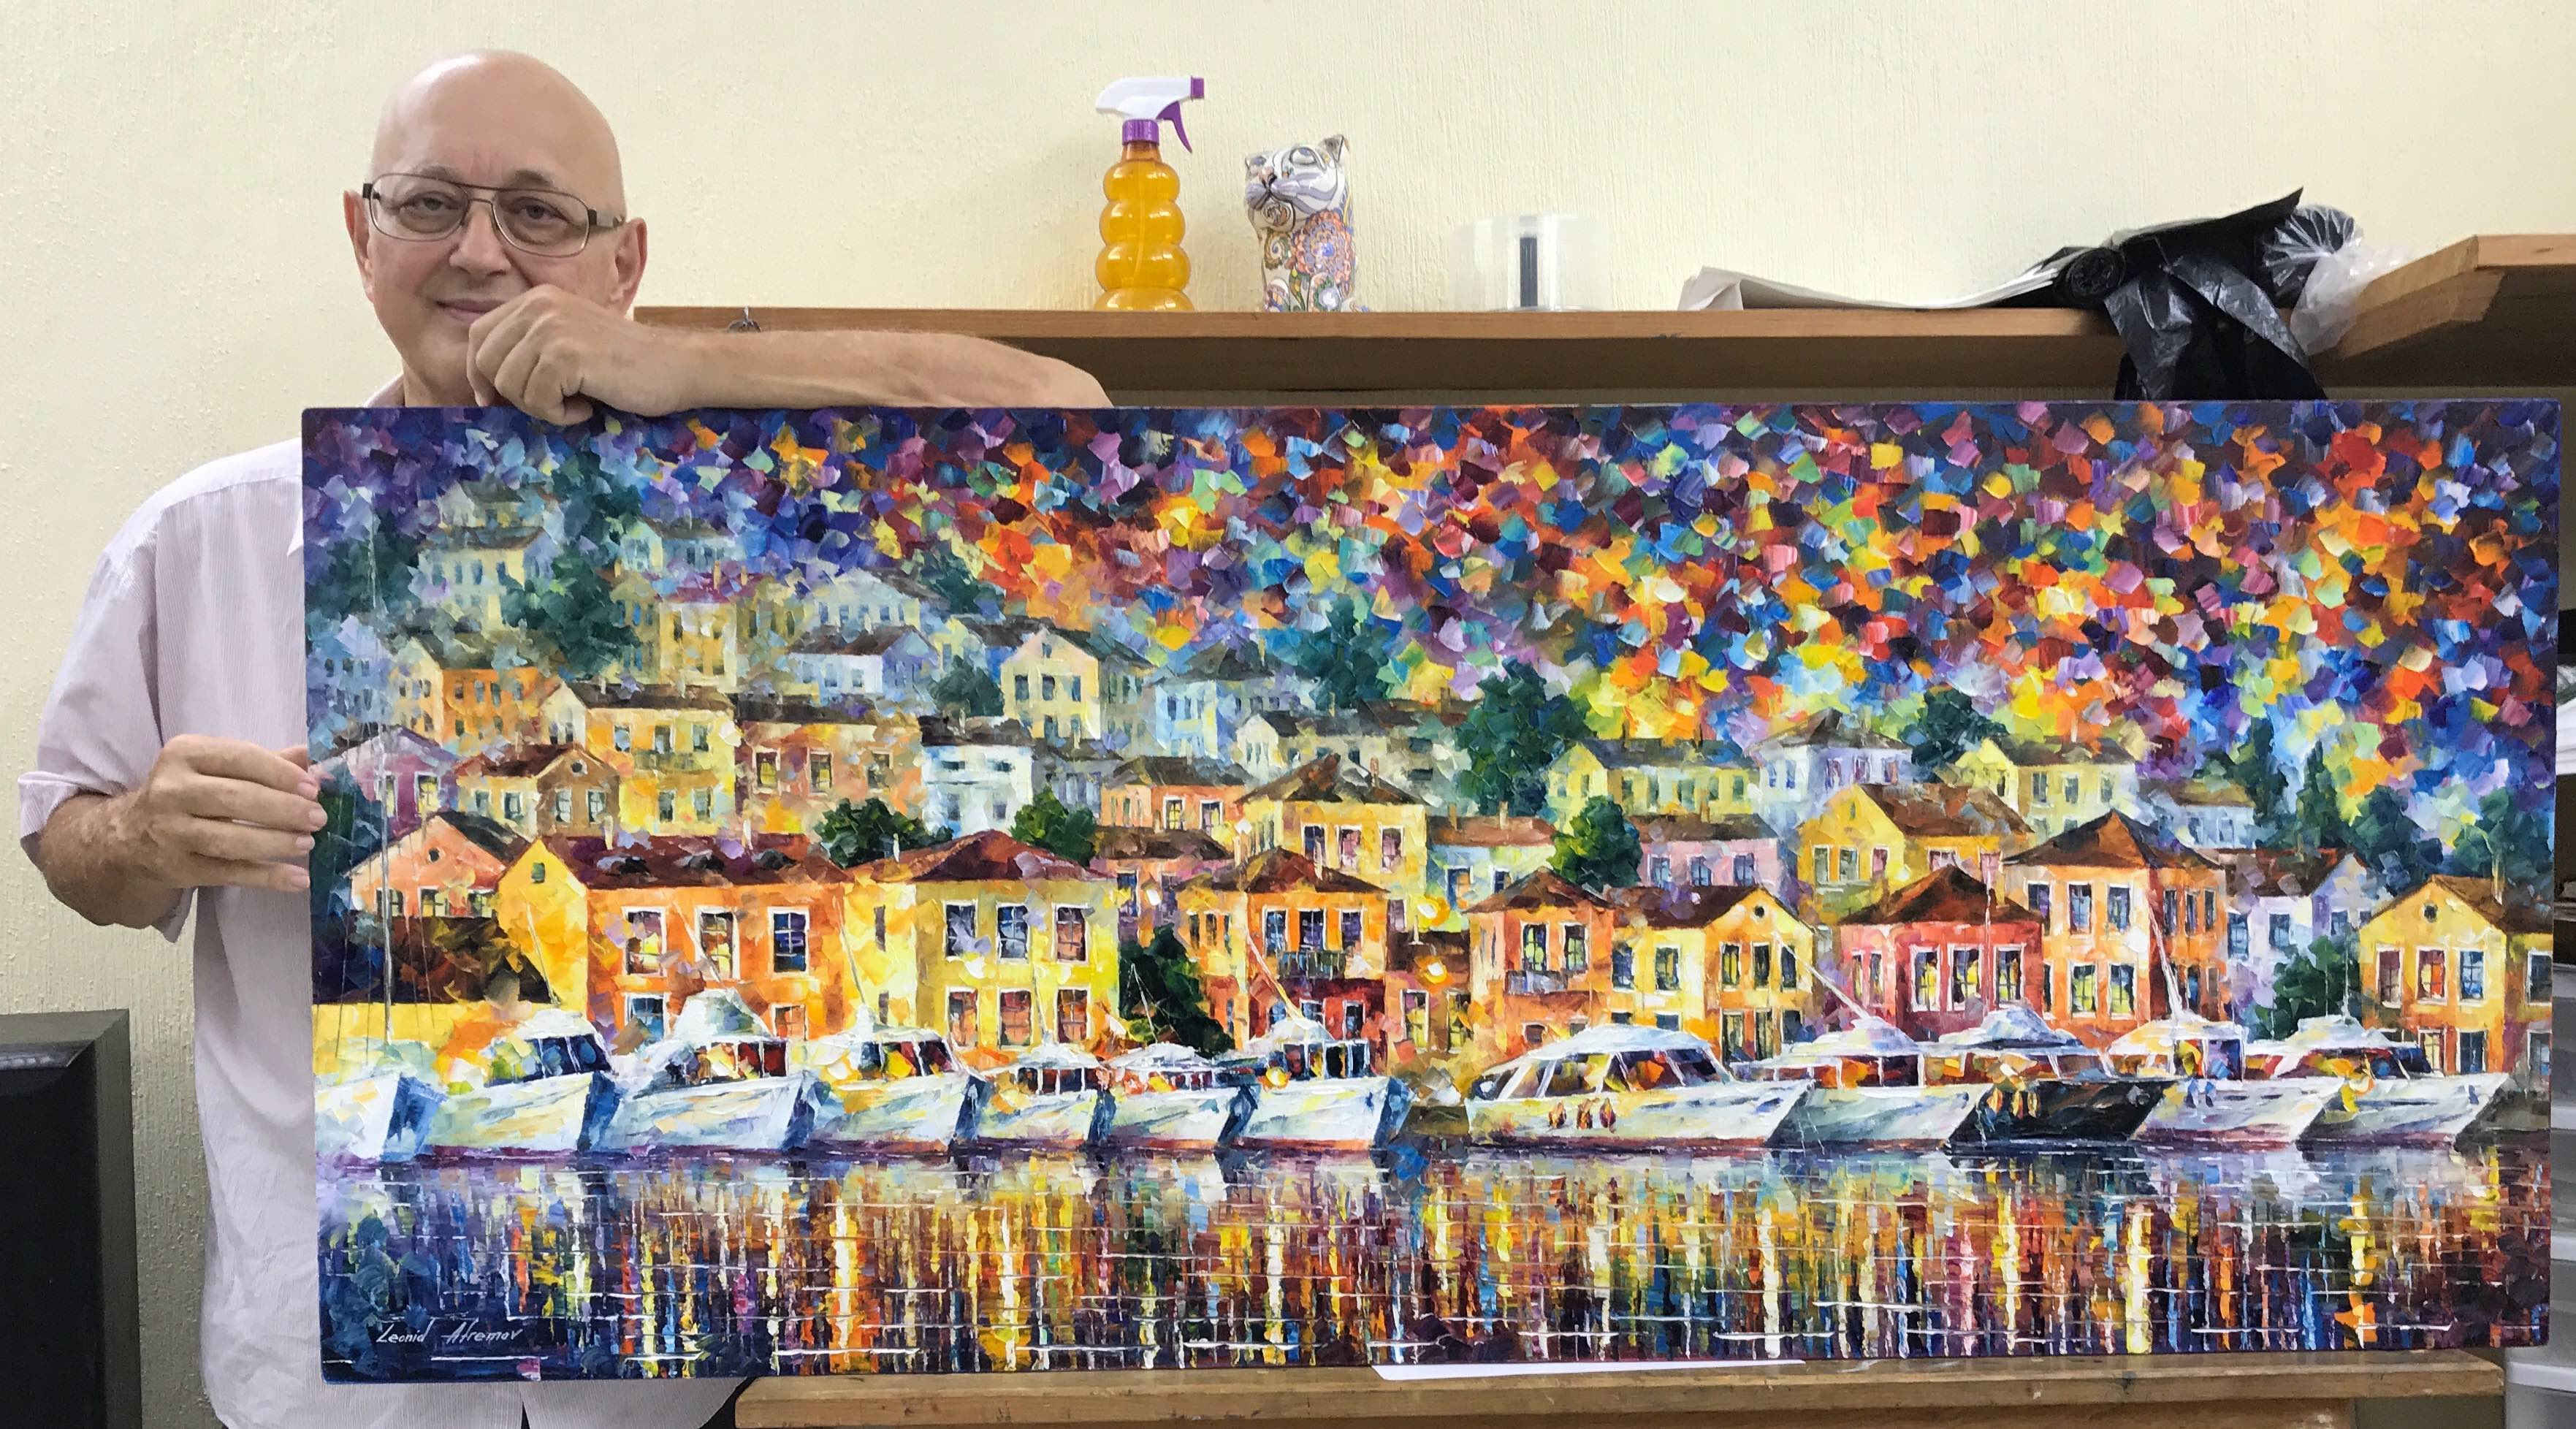 "LONG HARBOR - Original Oil Painting On Canvas By Leonid Afremov - 57""X24""  (143cm x 60cm)"